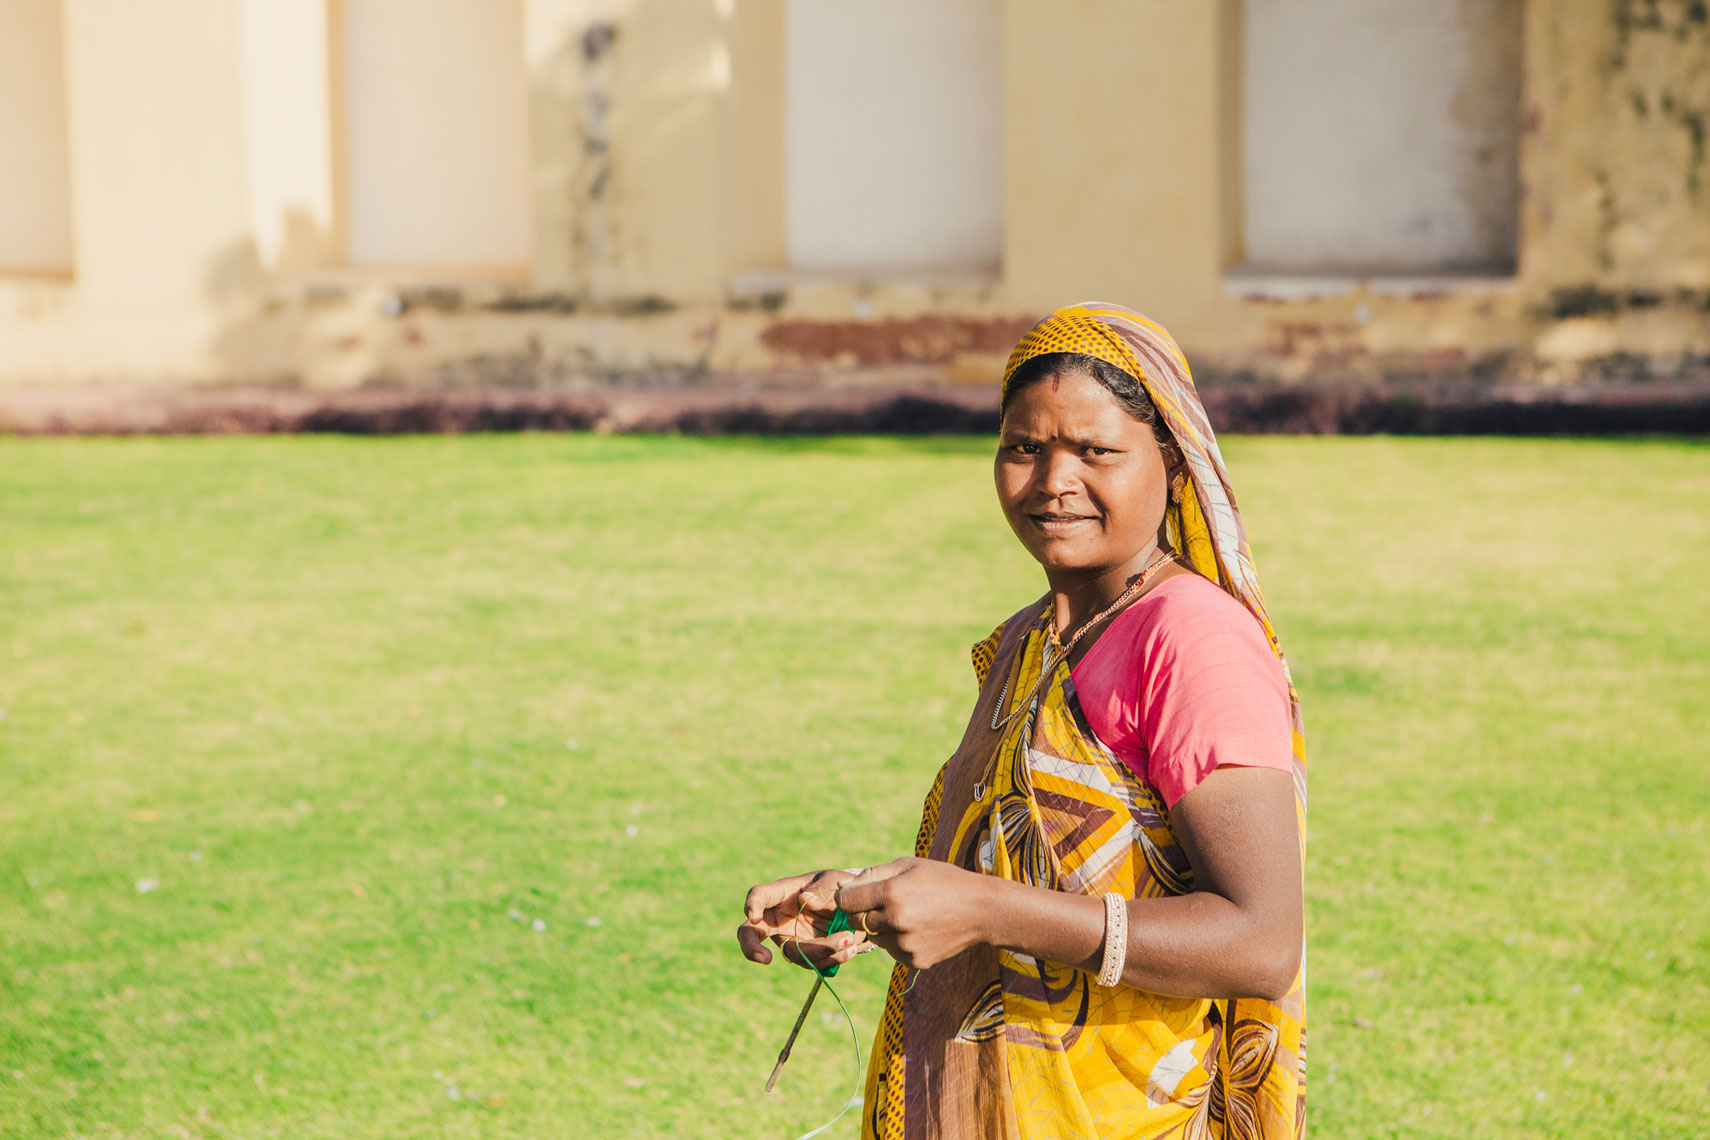 deepi-ahluwalia-india-jaipur-woman-grass